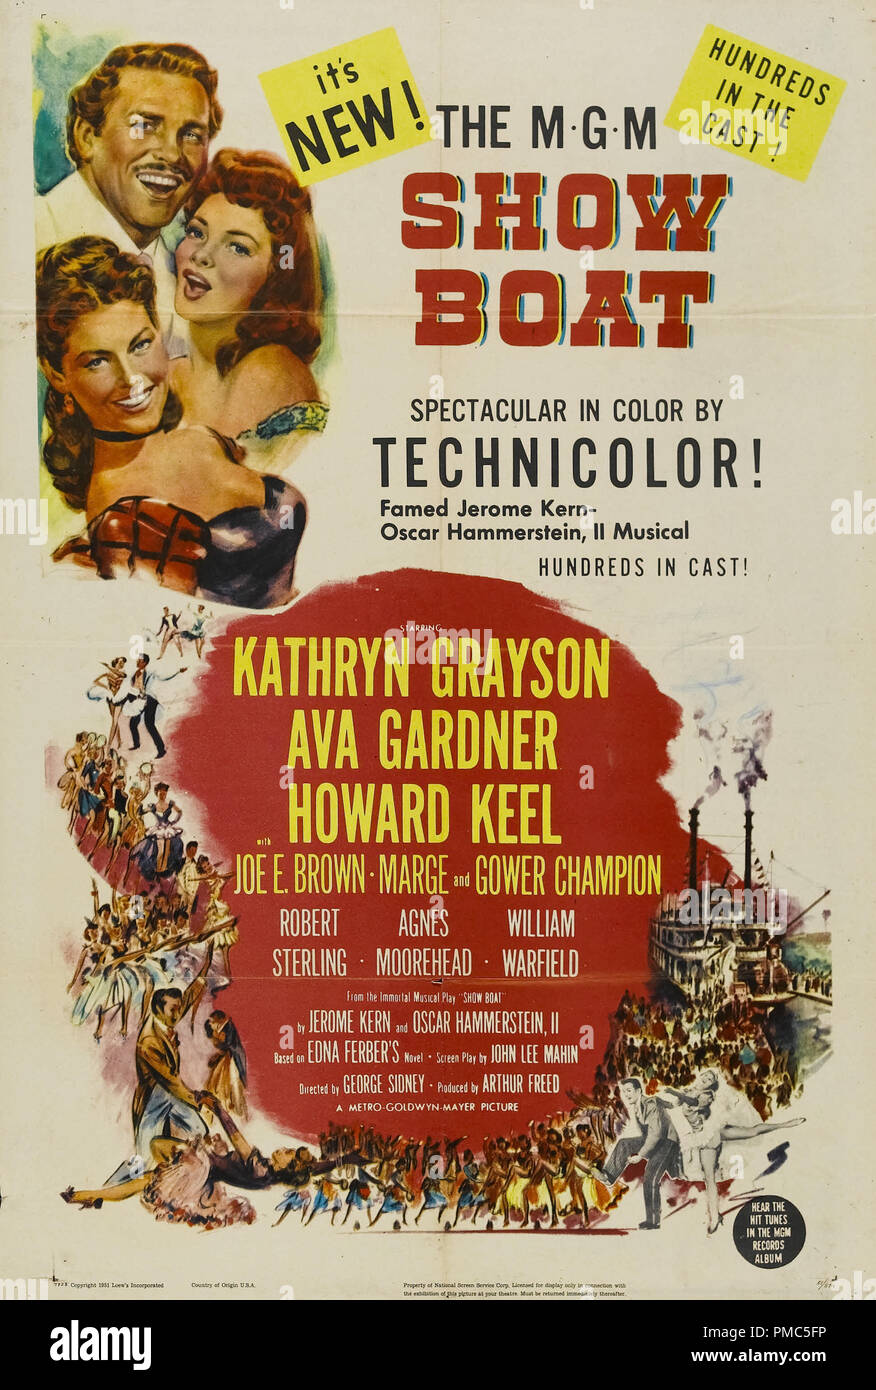 Ava Gardner, Kathryn Grayson, Howard Keel,  Show Boat (MGM, 1951). Poster  File Reference # 33635_044THA - Stock Image